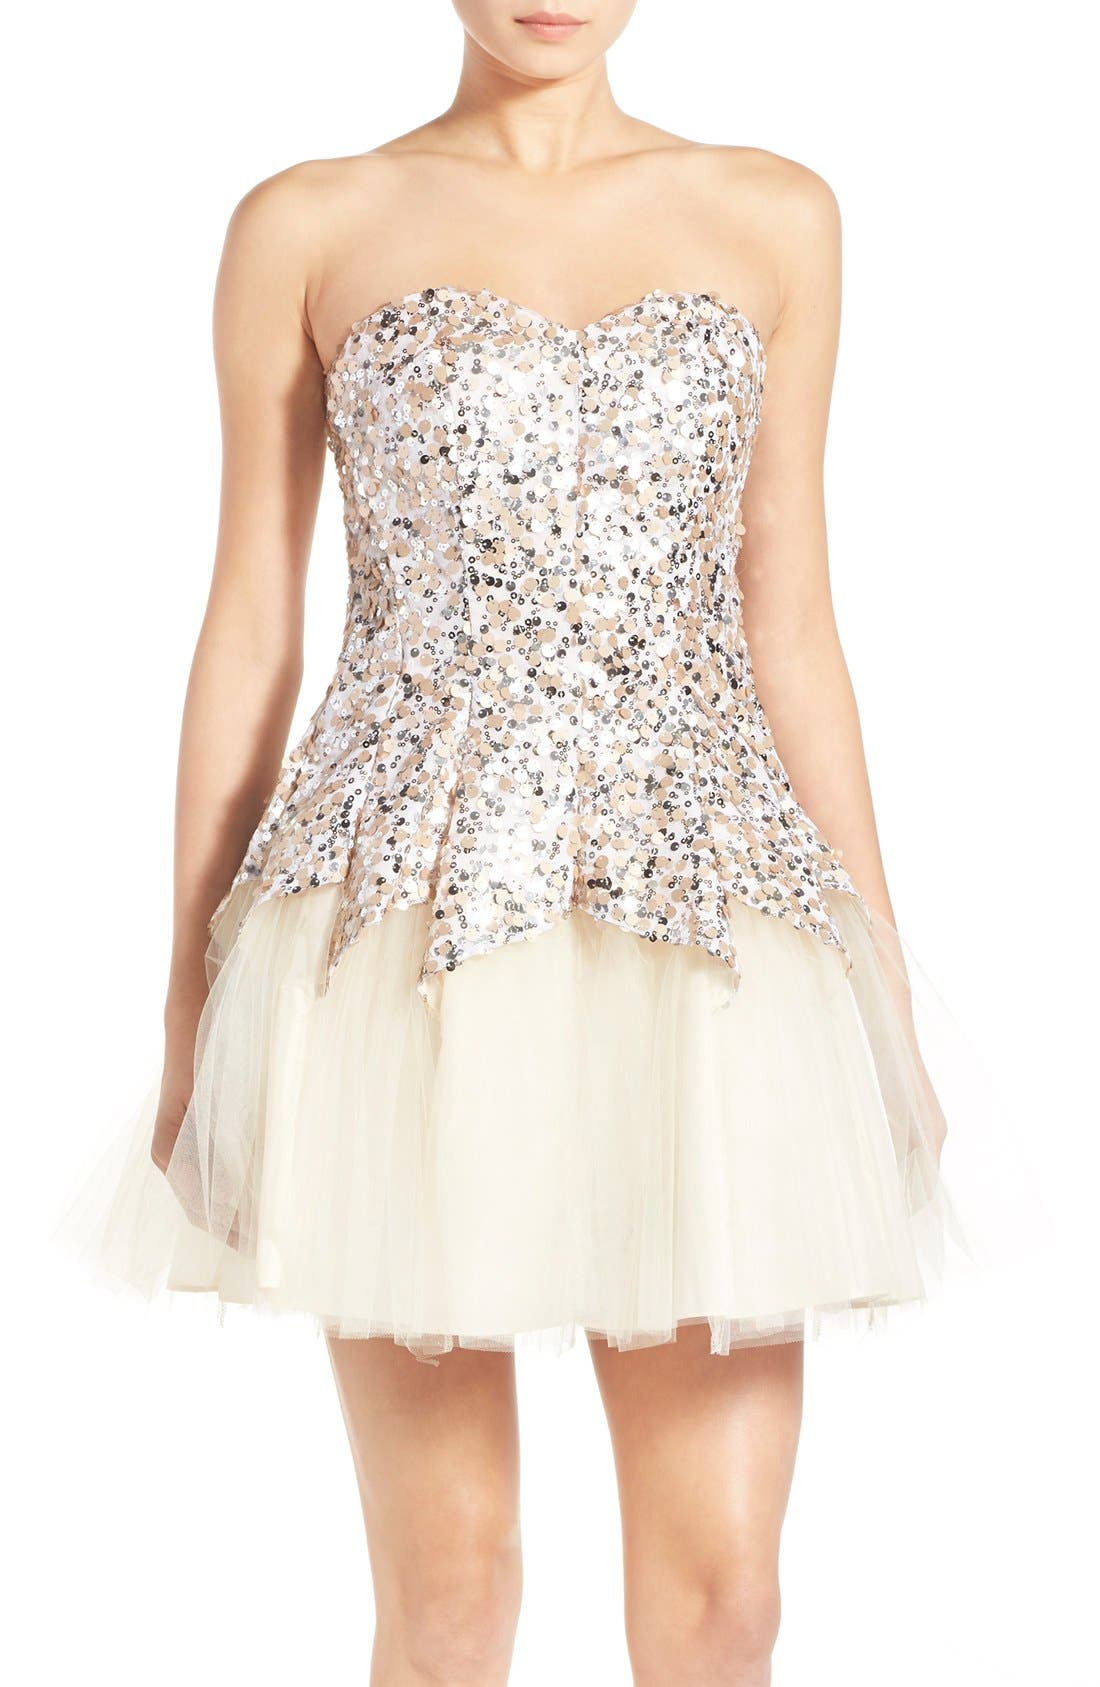 Alternate Image 1 Selected - Steppin Out Sequin Tulip Dress